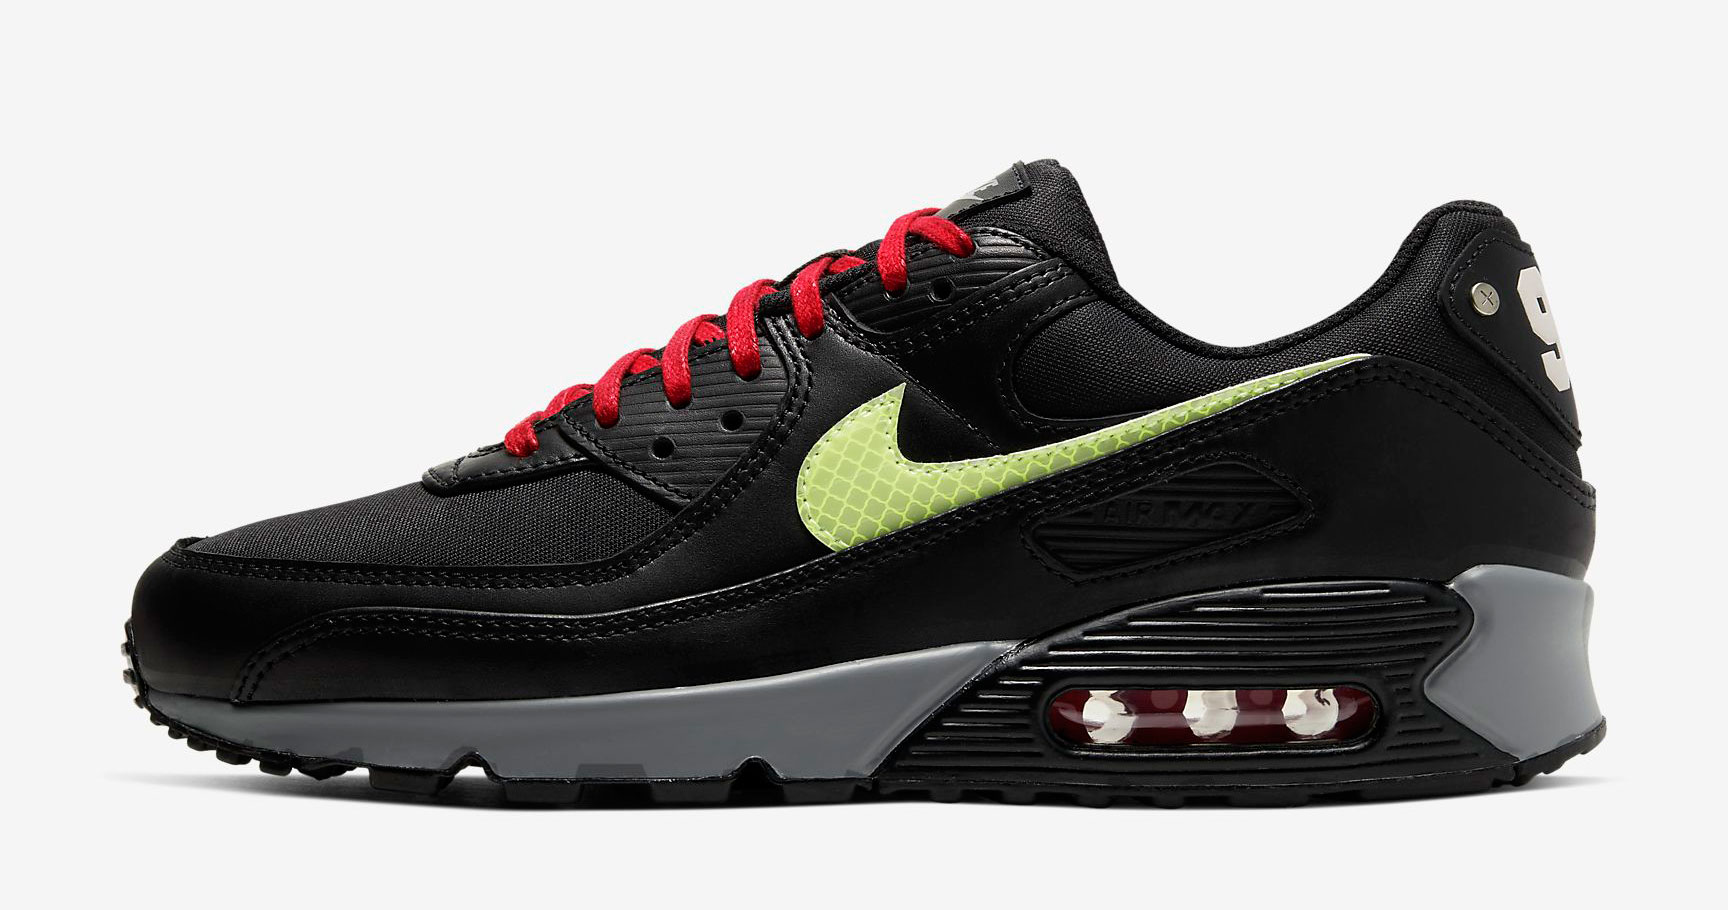 nike-air-max-90-fdny-release-date-2